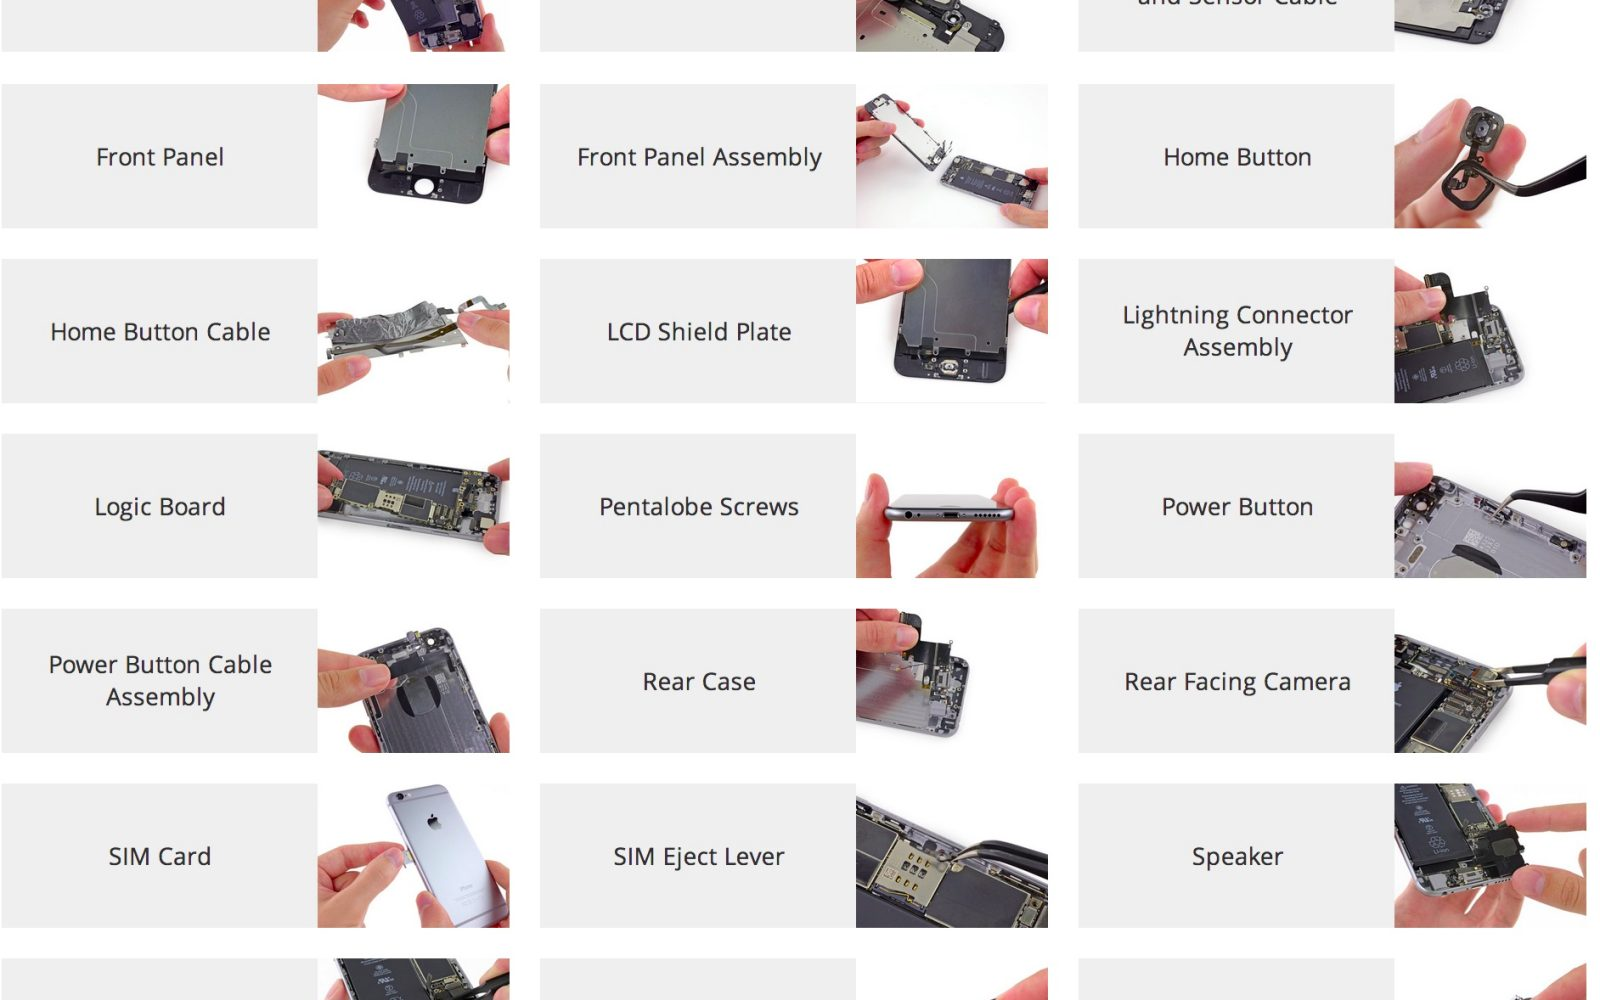 iFixit: How to fix your iPhone 6 or 6 Plus in 21 easy guides